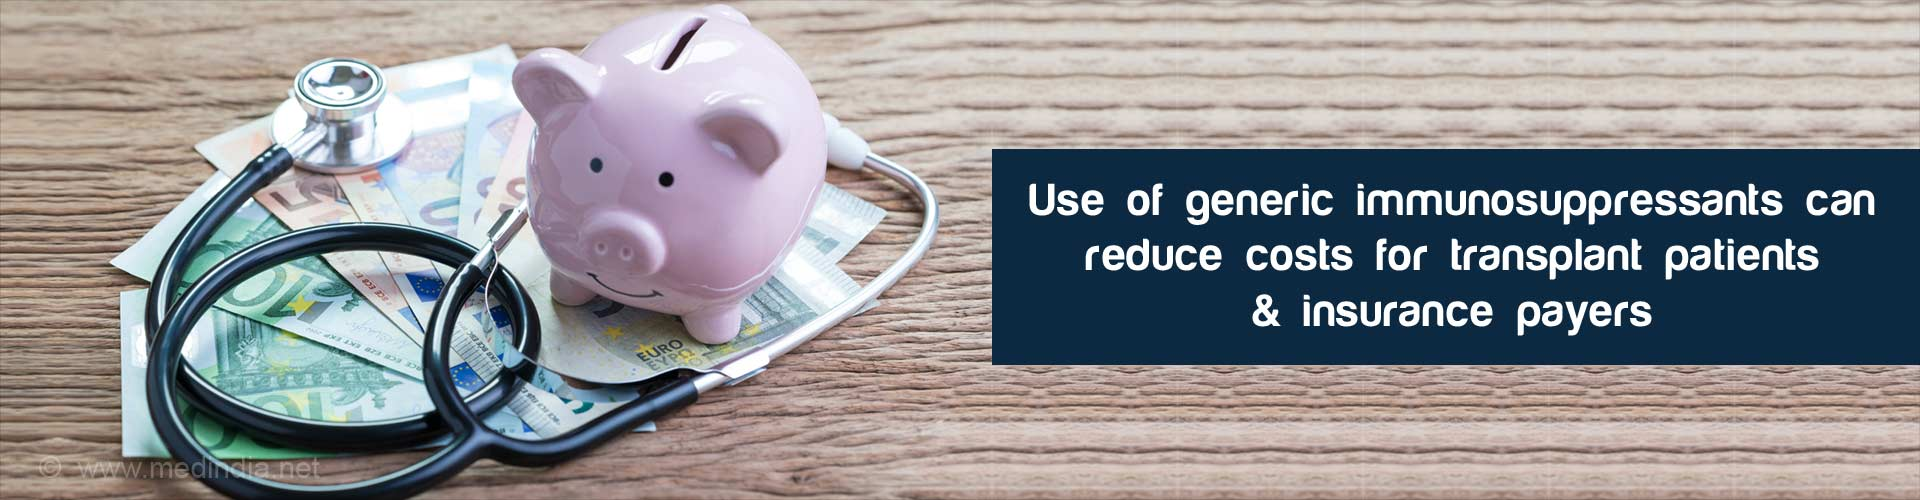 Generic Immunosuppressants Have Reduced Costs for Transplant Patients